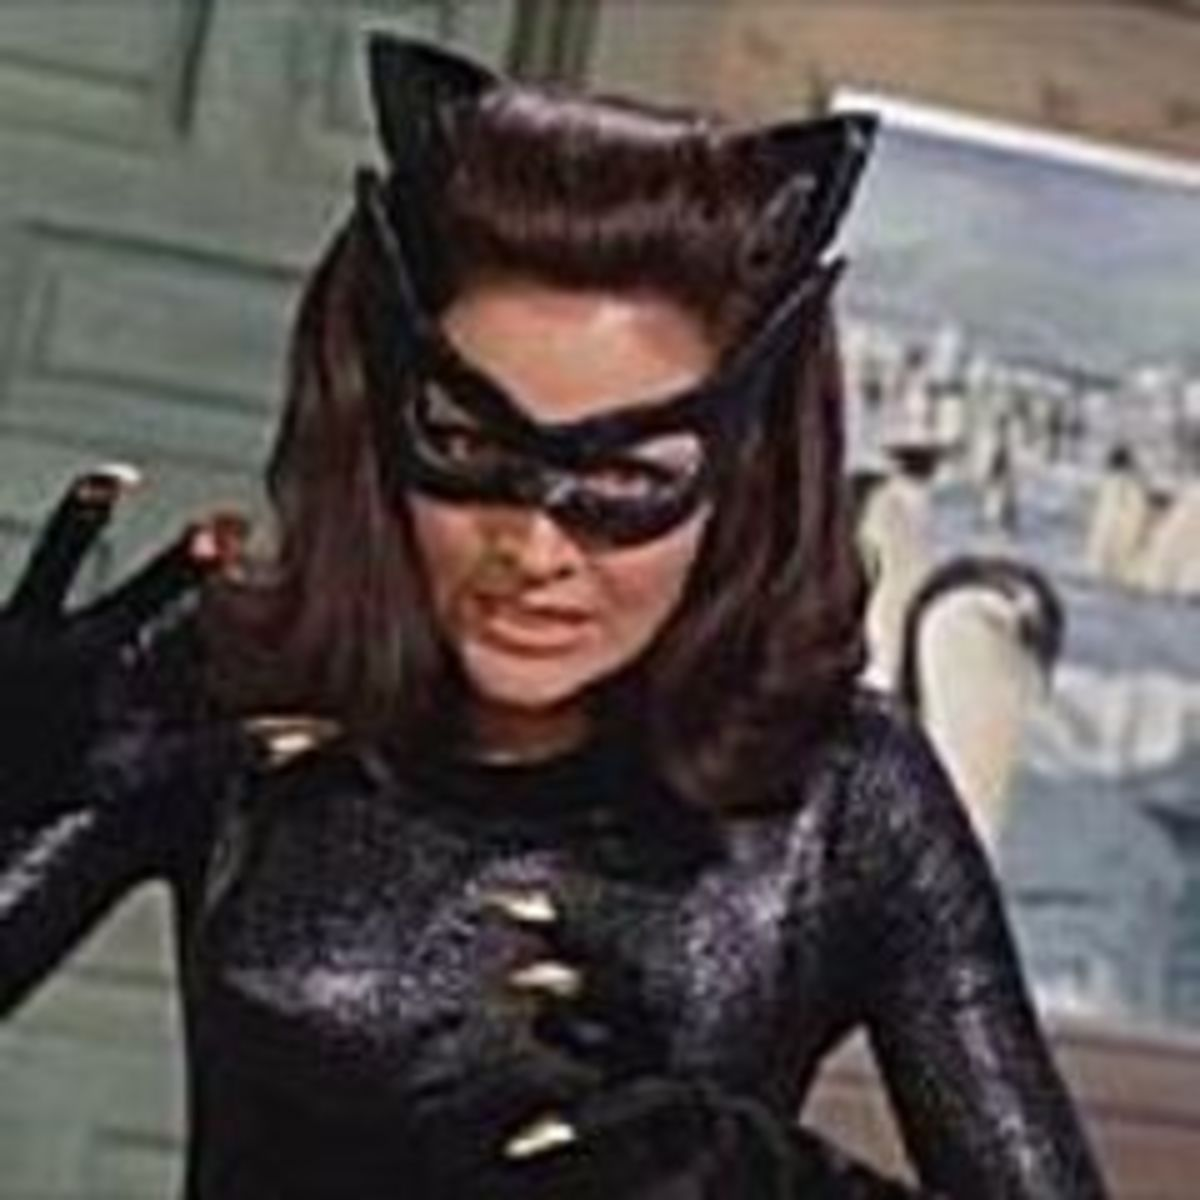 Lee Meriwether as Catwoman in Batman movie